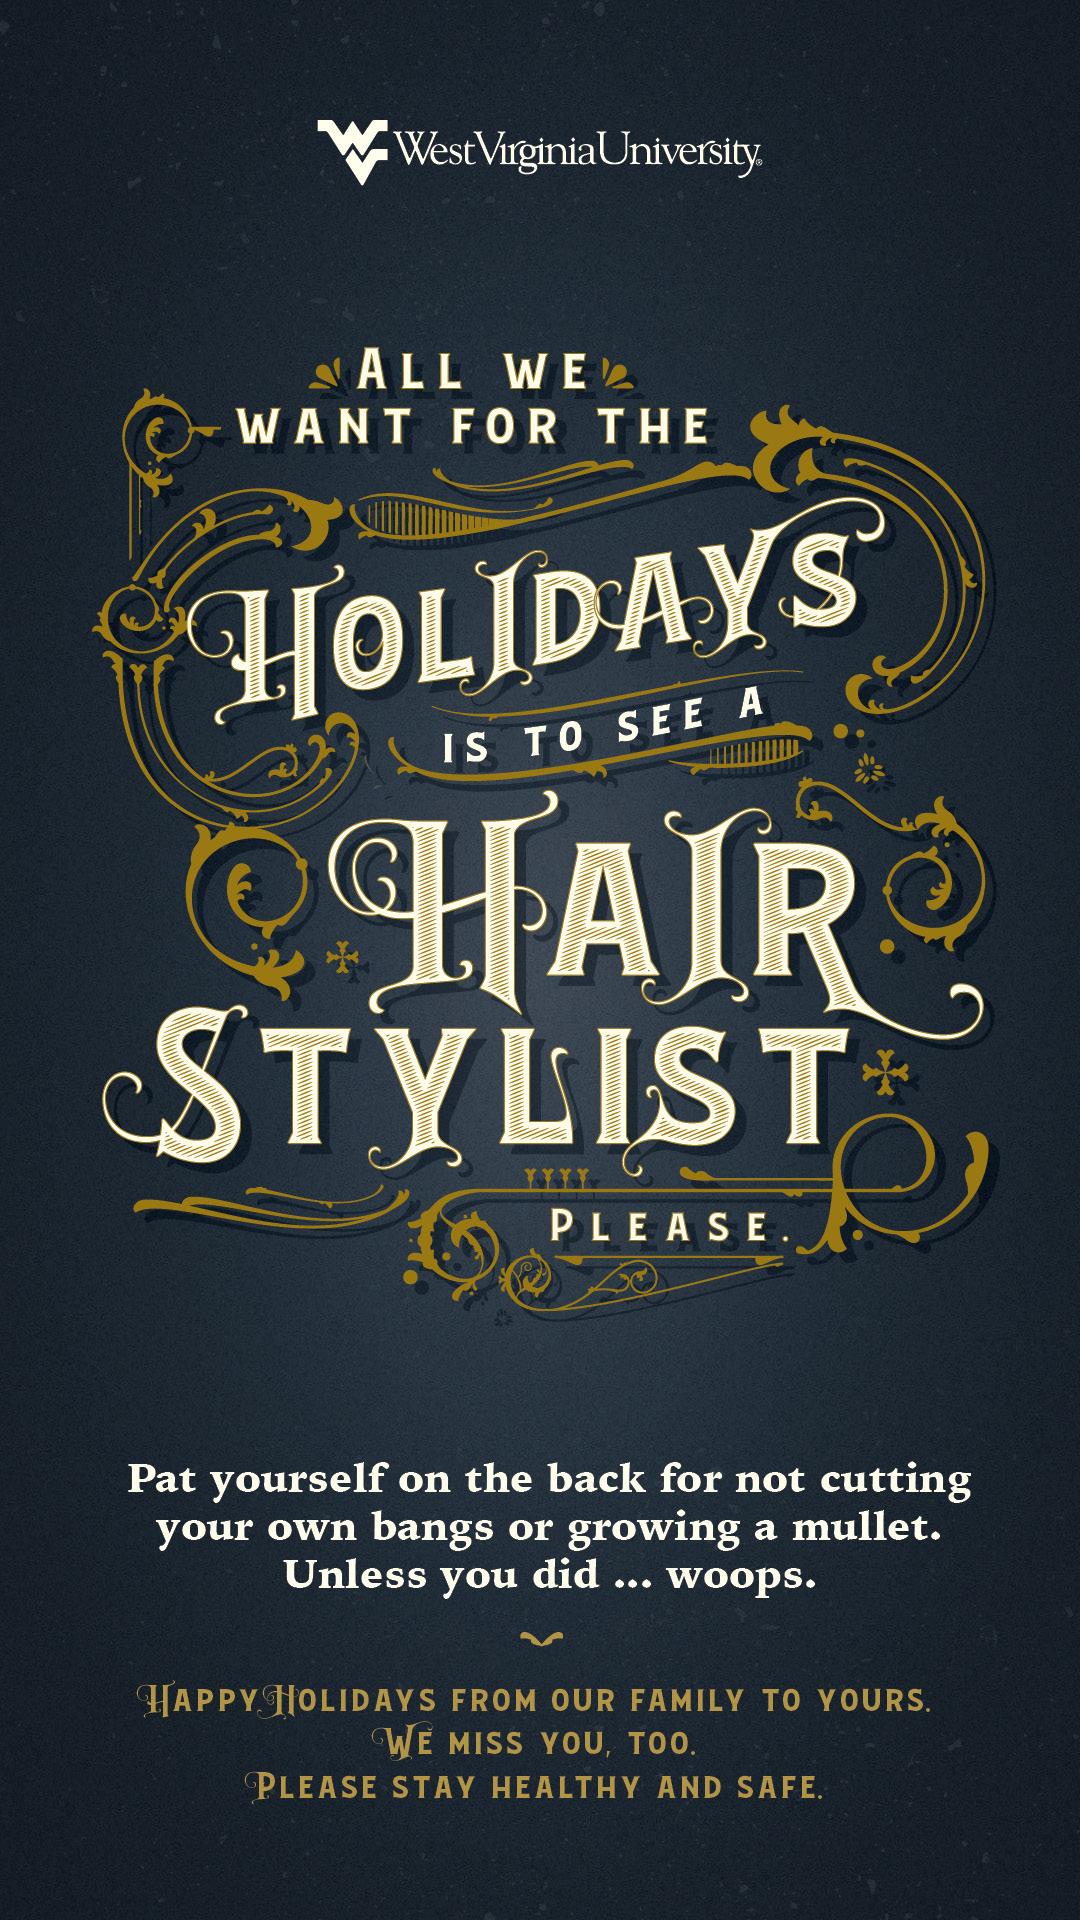 All We Want for the Holidays is to See a Hair Stylist Please poster. Poster content below image.